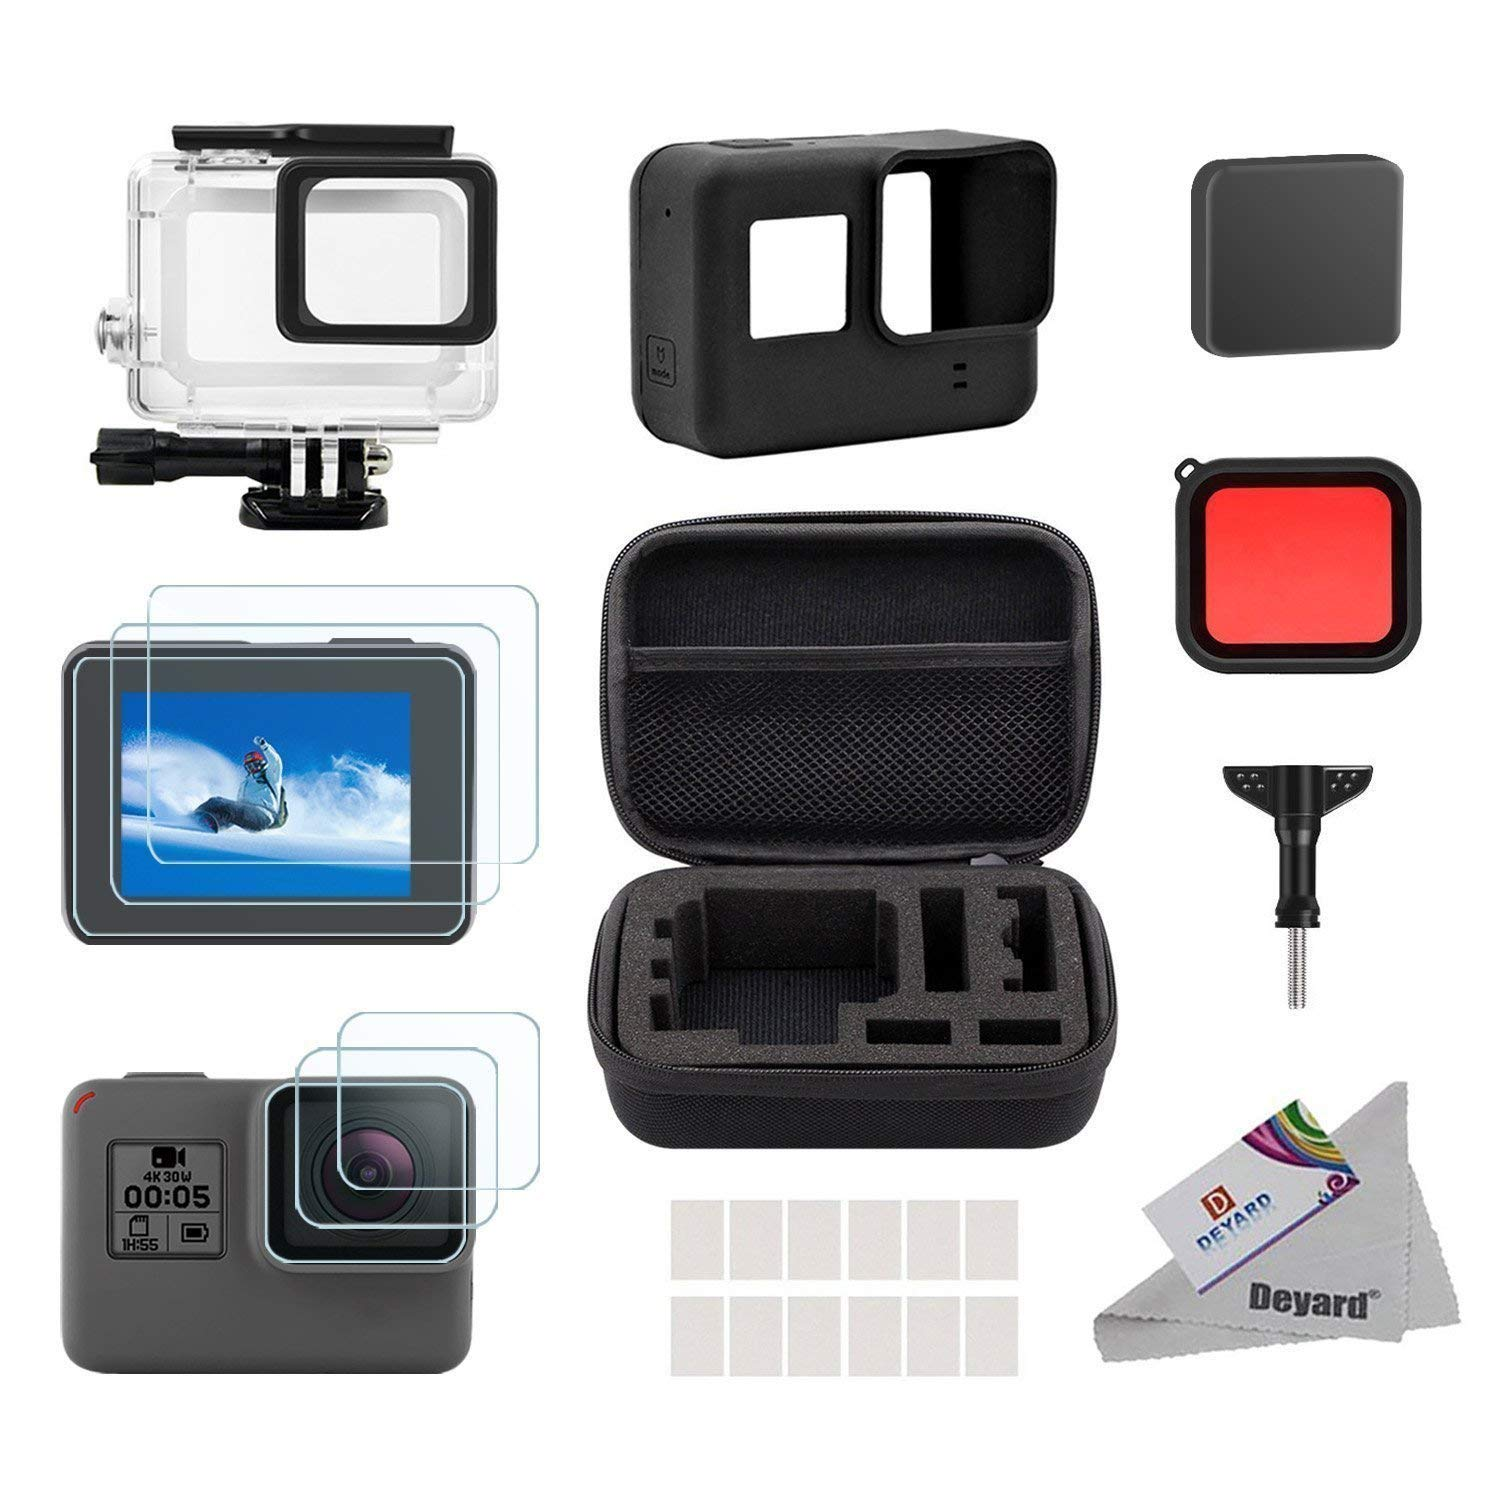 25 in 1 Accessory Kit for GoPro Hero (2018) GoPro Hero 6 Hero 5 with Shockproof Small Case Bundle&Silicone Rubber Lens Cap high precision cnc aluminum alloy lens strap ring for gopro hero 3 red